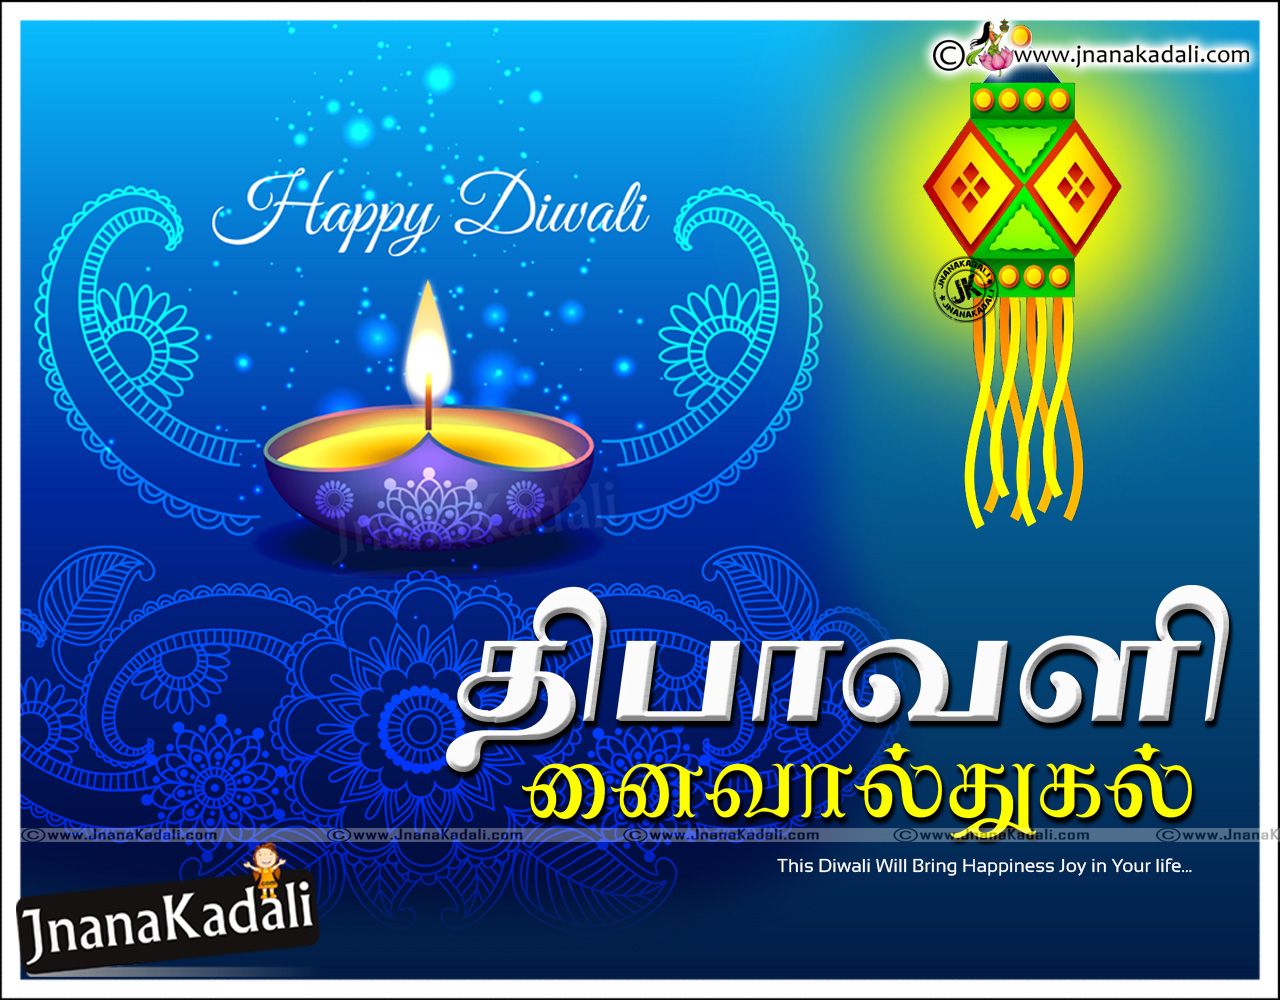 Diwali wishes quotes in tamil tamil diwali greetings 2016 diwali here is the latest tamil diwali greetings tamil diwali hd wallpapers latest diwali tamil greetings with hd wallpapers diwali whats app status greetings m4hsunfo